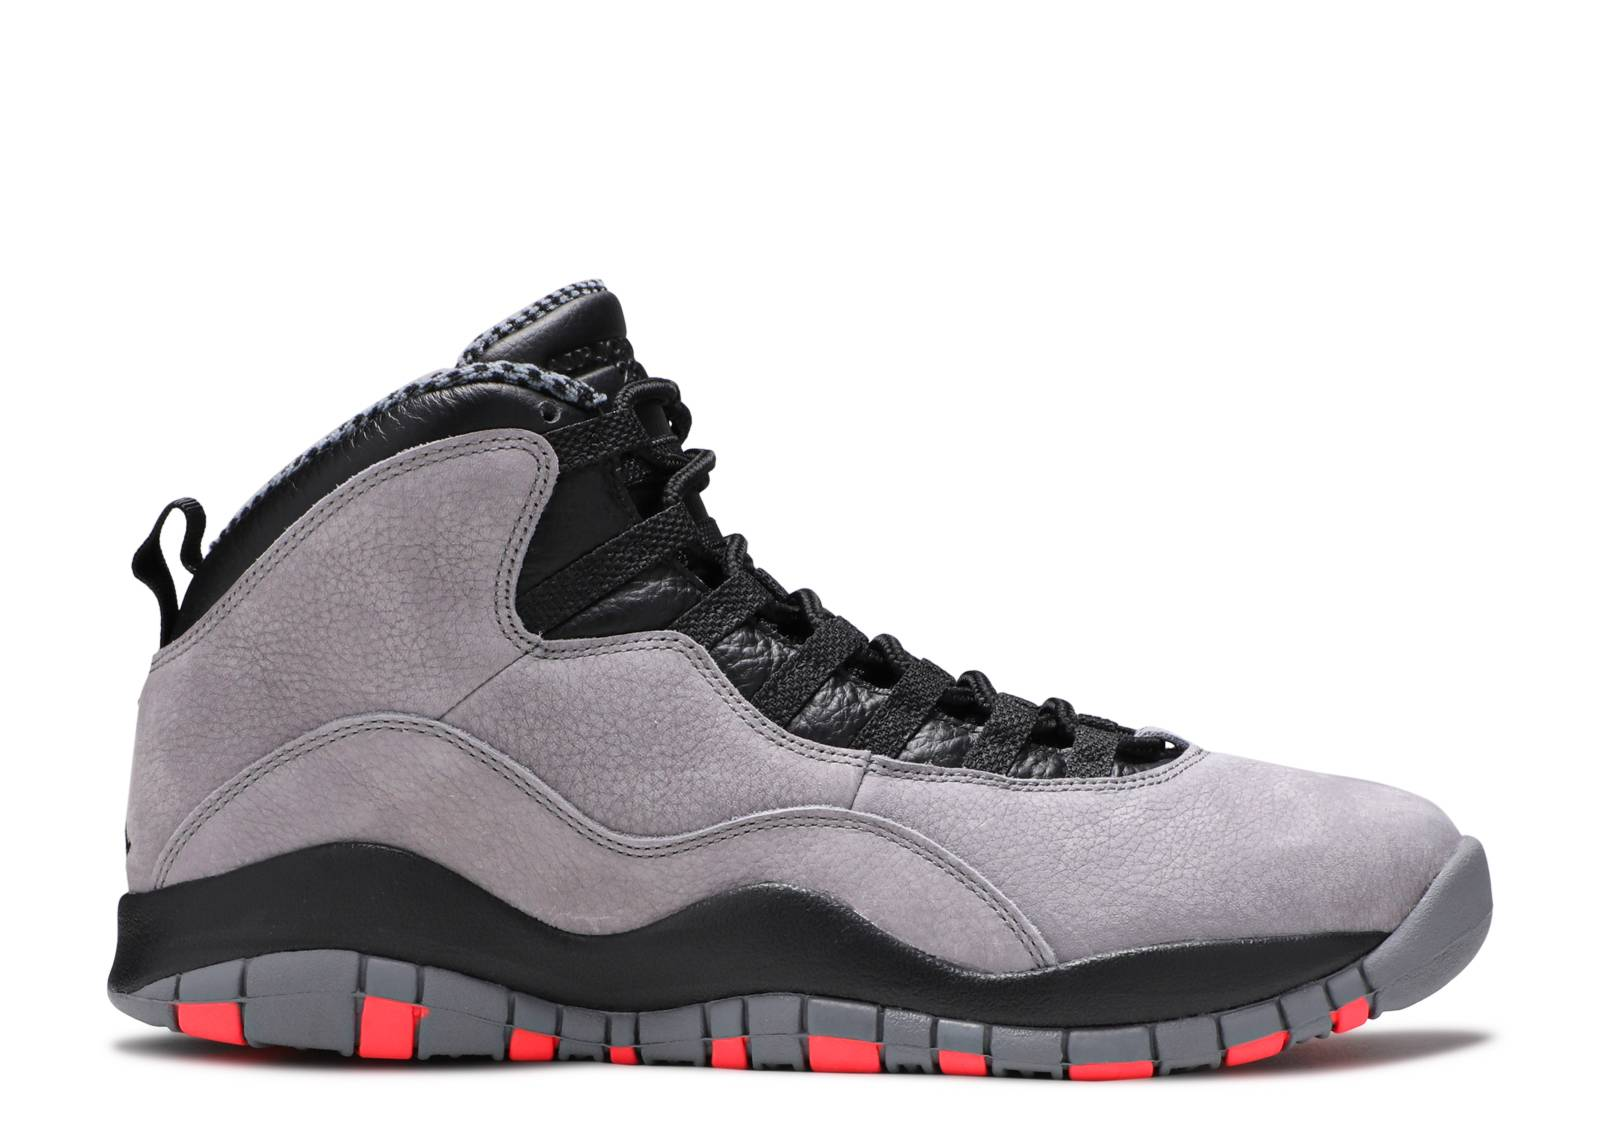 official photos 4e534 b74e7 air jordan retro 10